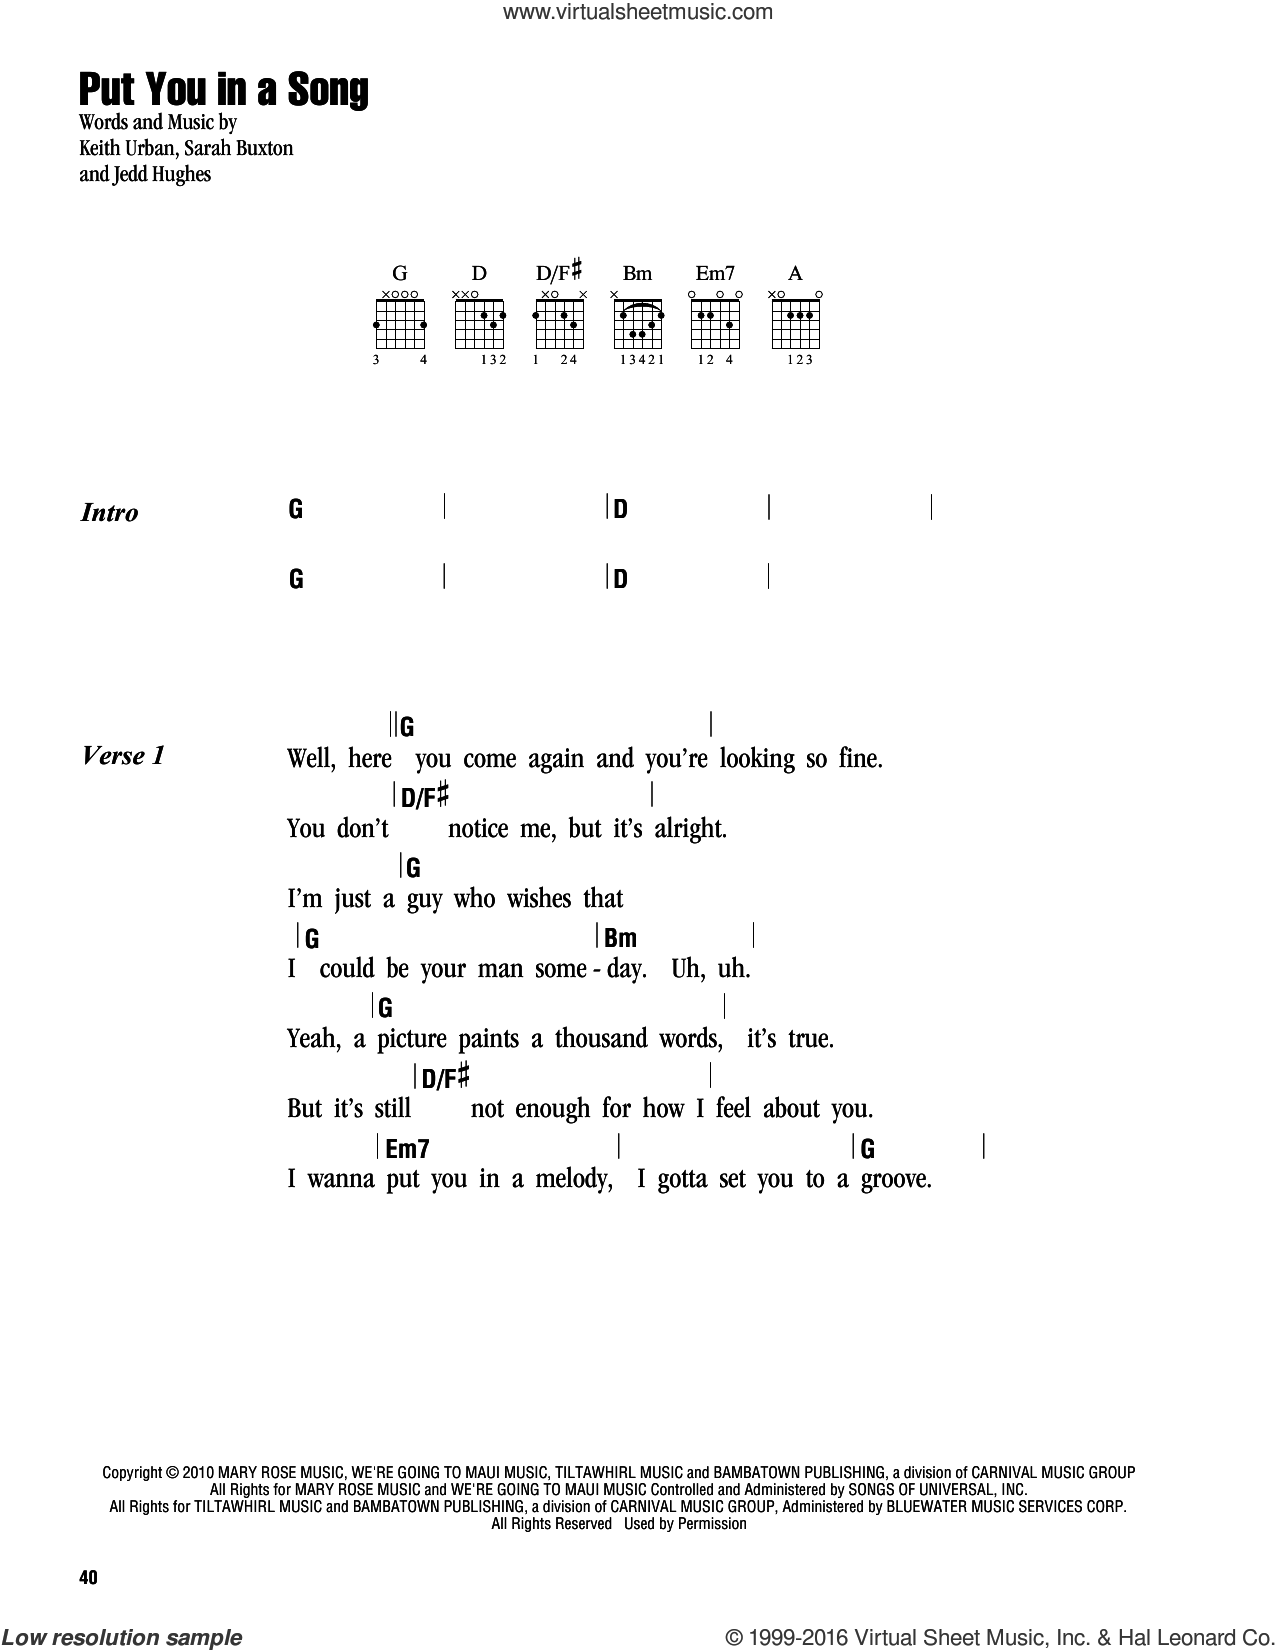 Put You In A Song sheet music for guitar (chords) by Keith Urban, Jedd Hughes and Sarah Buxton, intermediate skill level